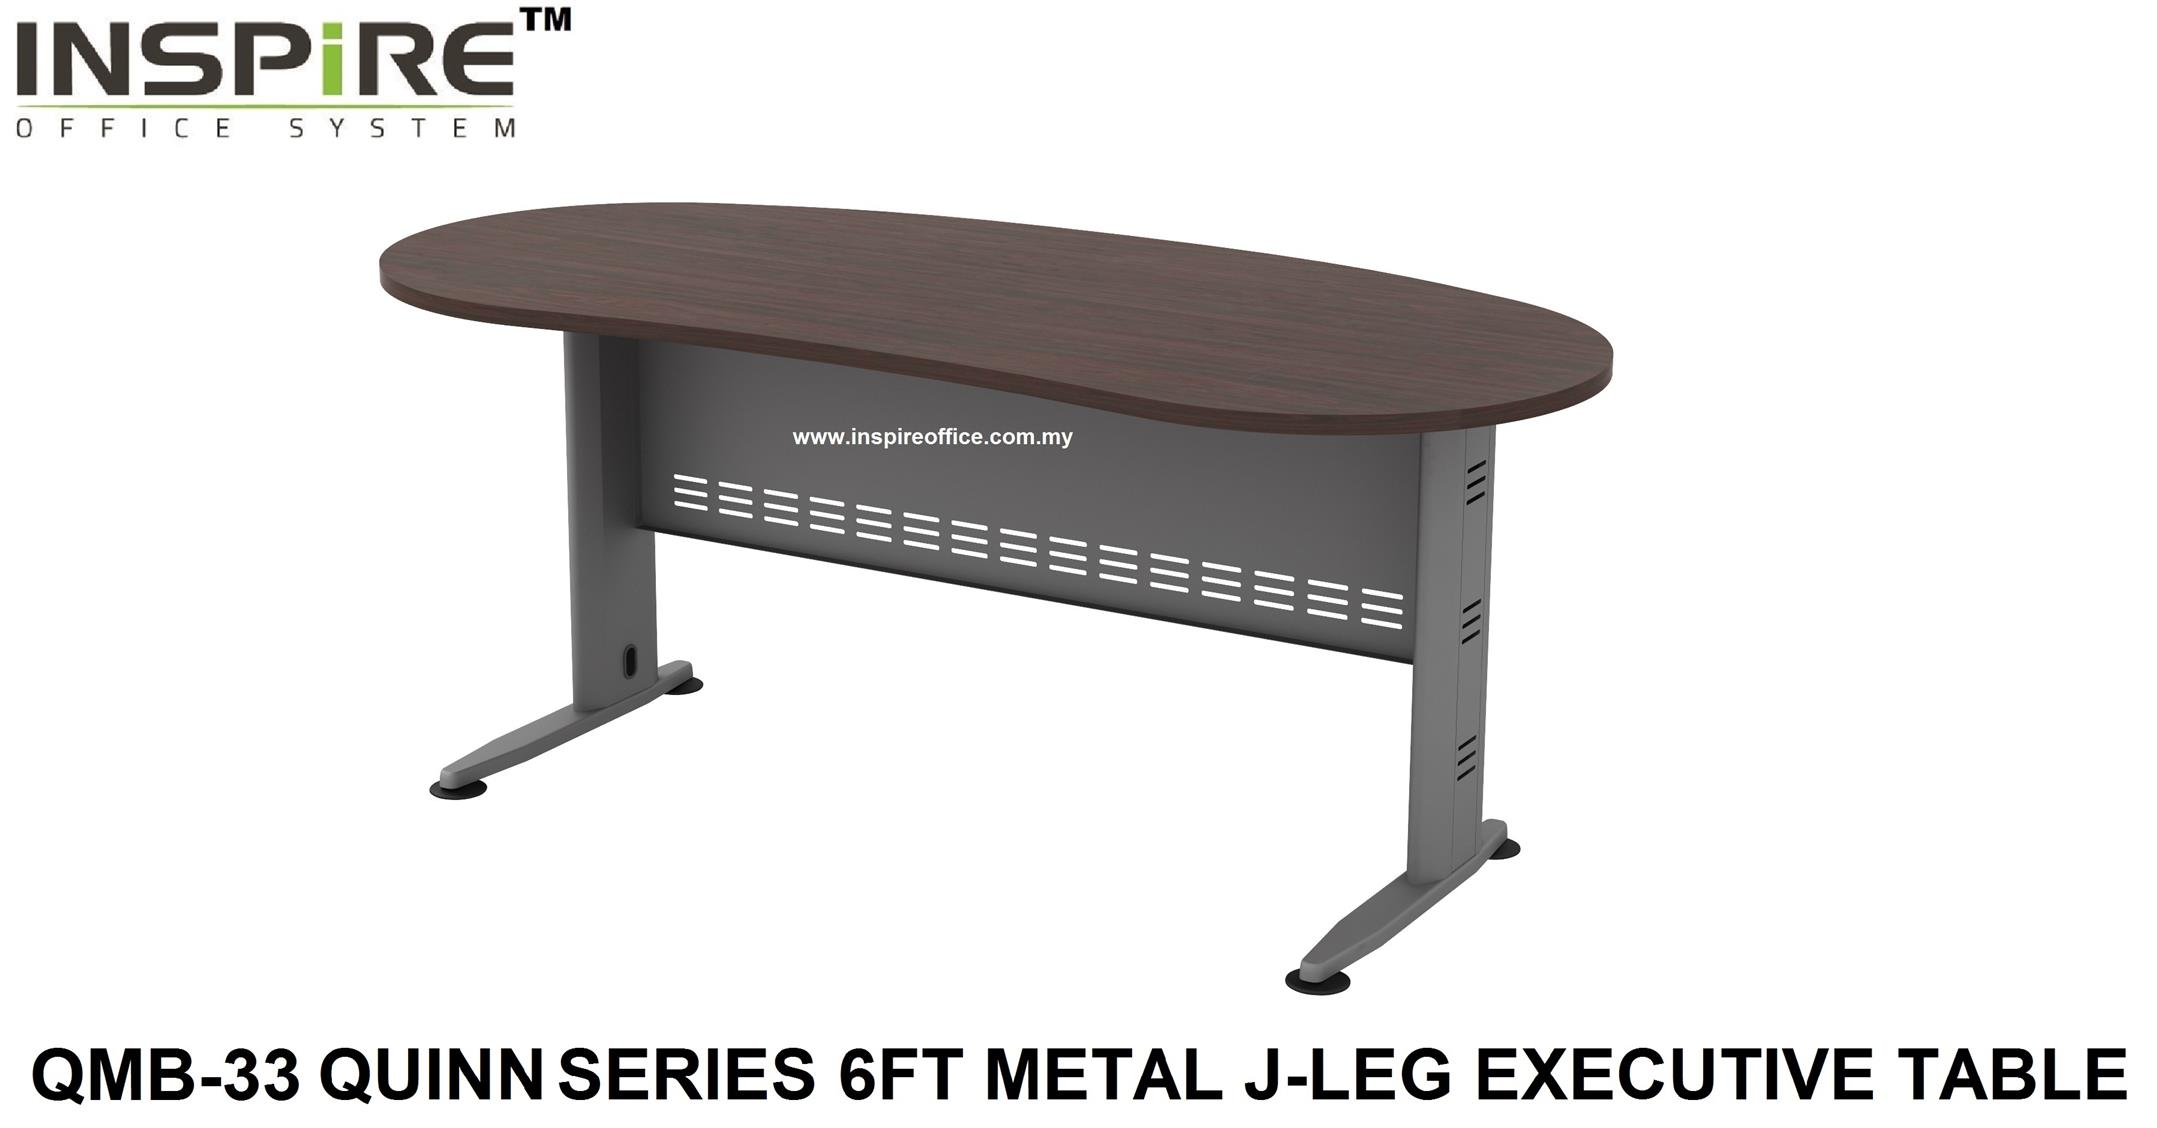 QMB-33 QUINN SERIES 6FT METAL J-LEG EXECUTIVE TABLE